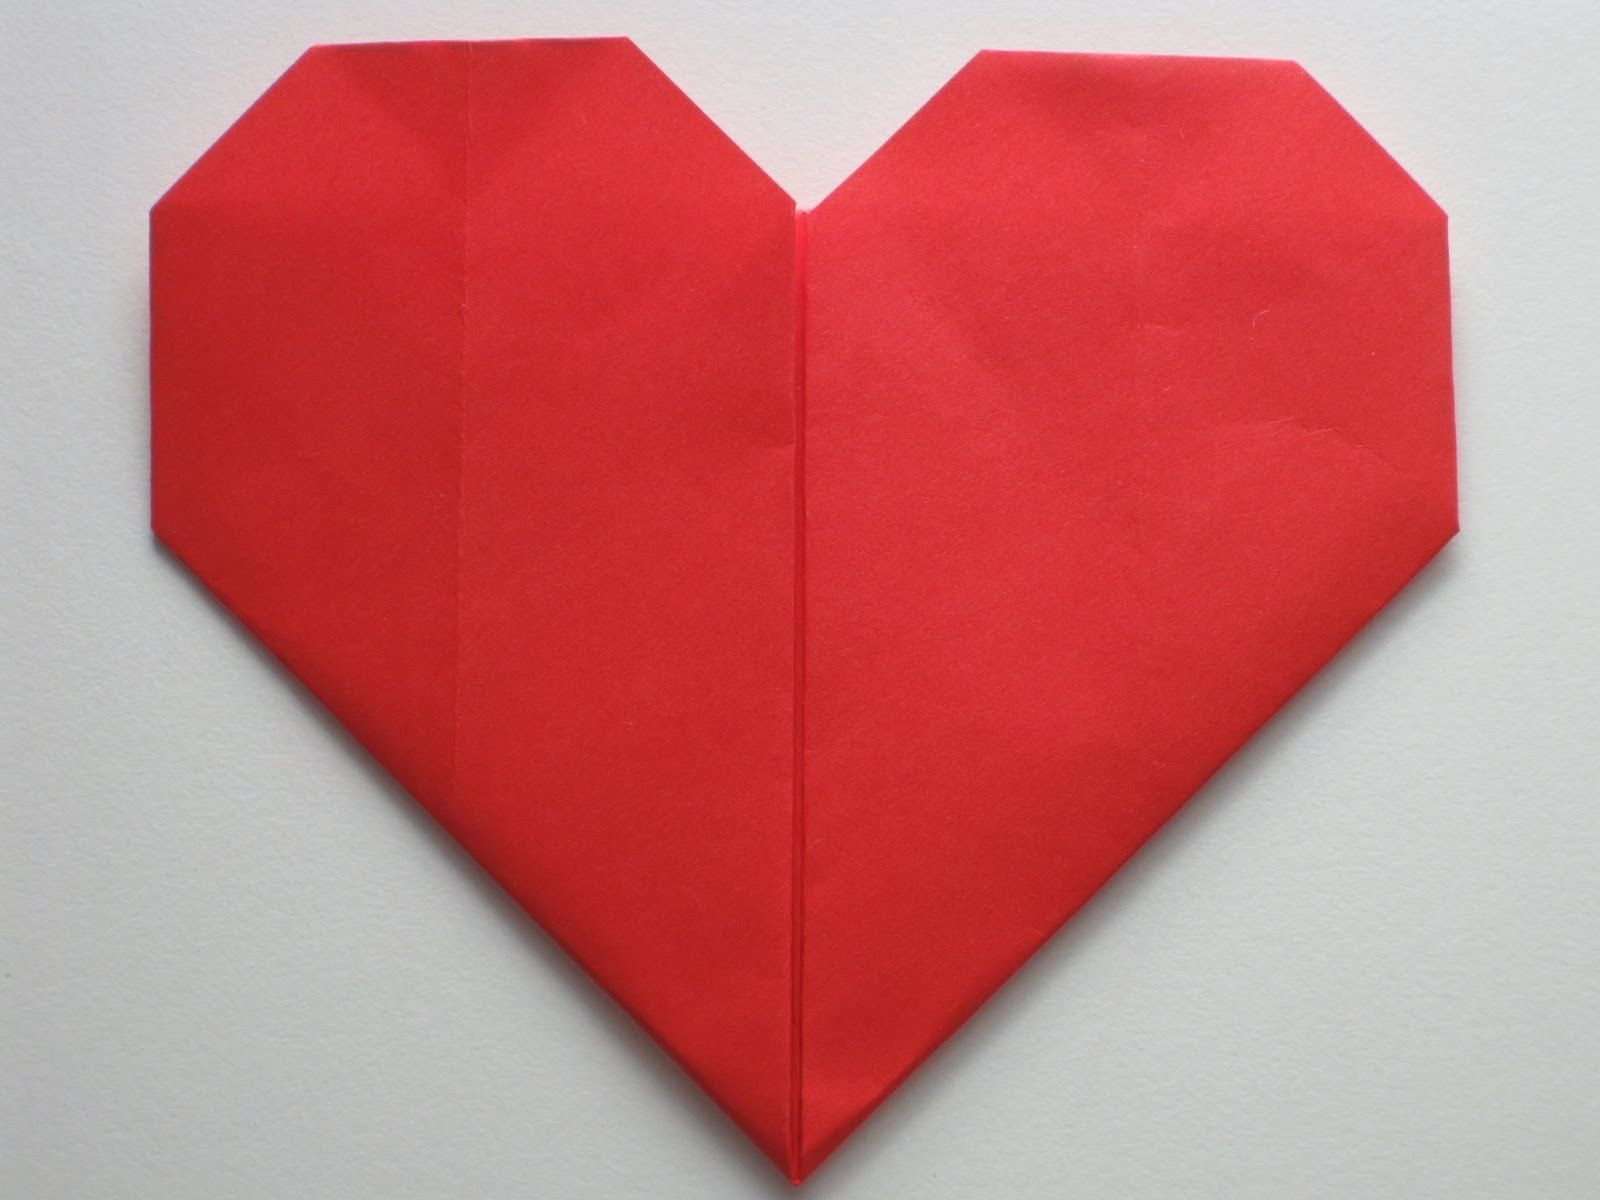 Origami hearts. | papier, carton, quilling,origami ... - photo#21